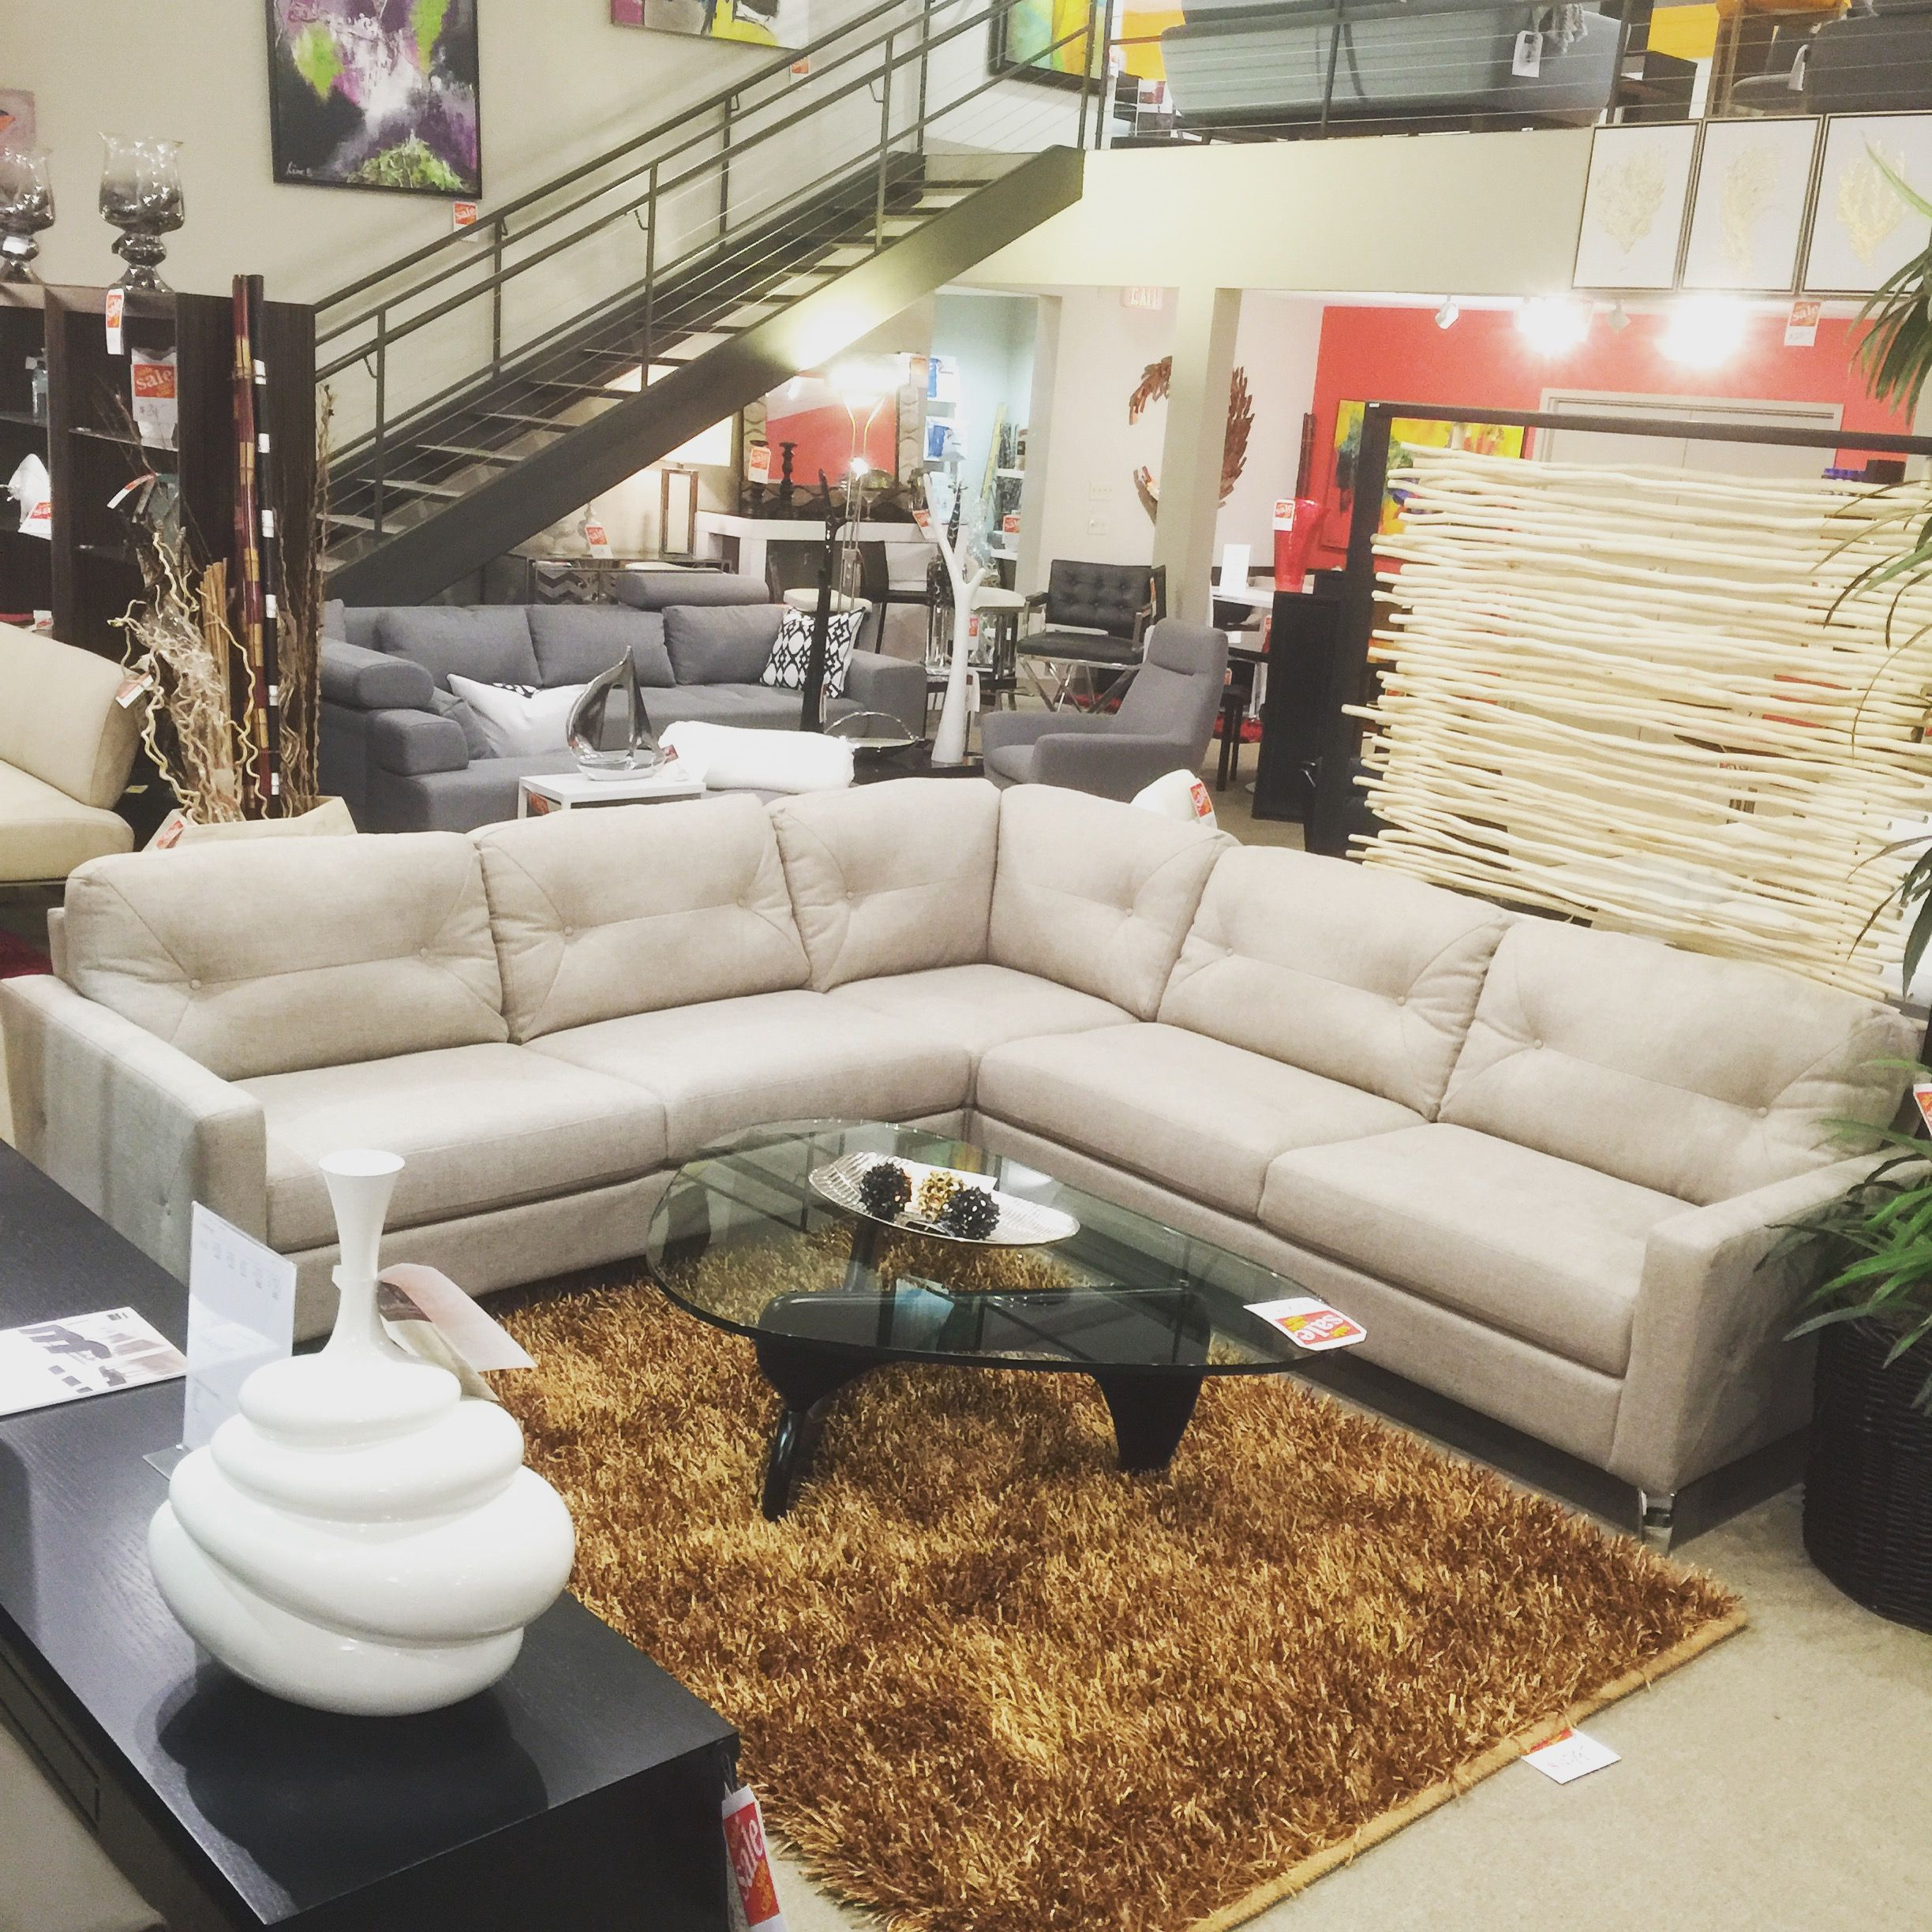 Scandinavia Inc. Metairie New Orleans Louisiana Palliser Dot Sectional